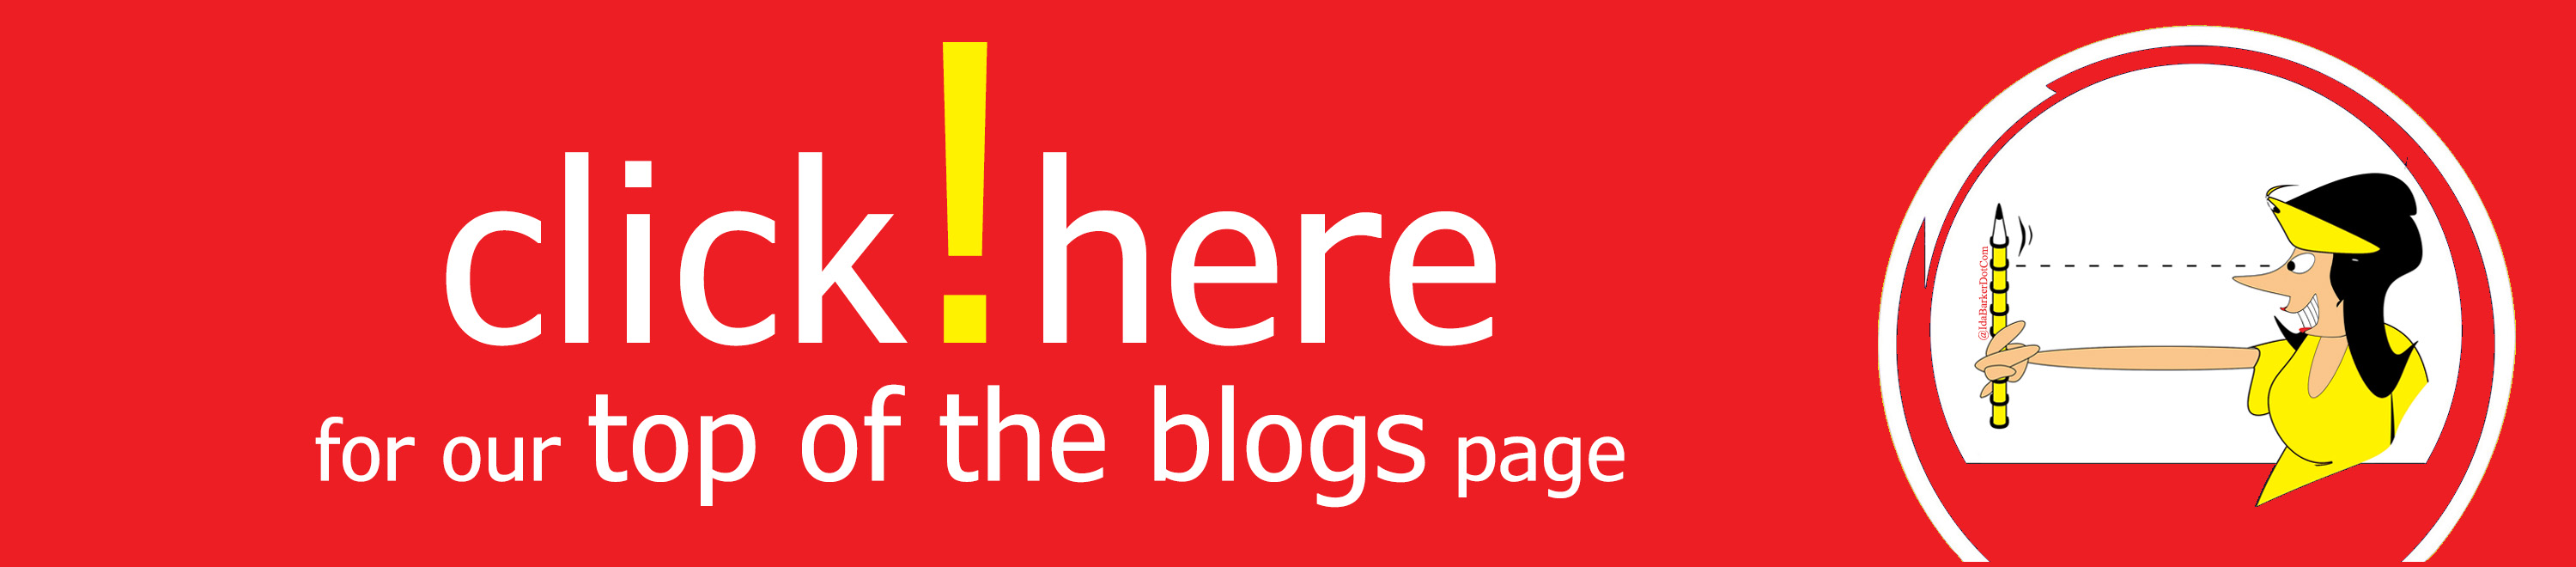 "Colourful banner, stating ""click here for our tops of the blogs page"" raffleproperty.net"